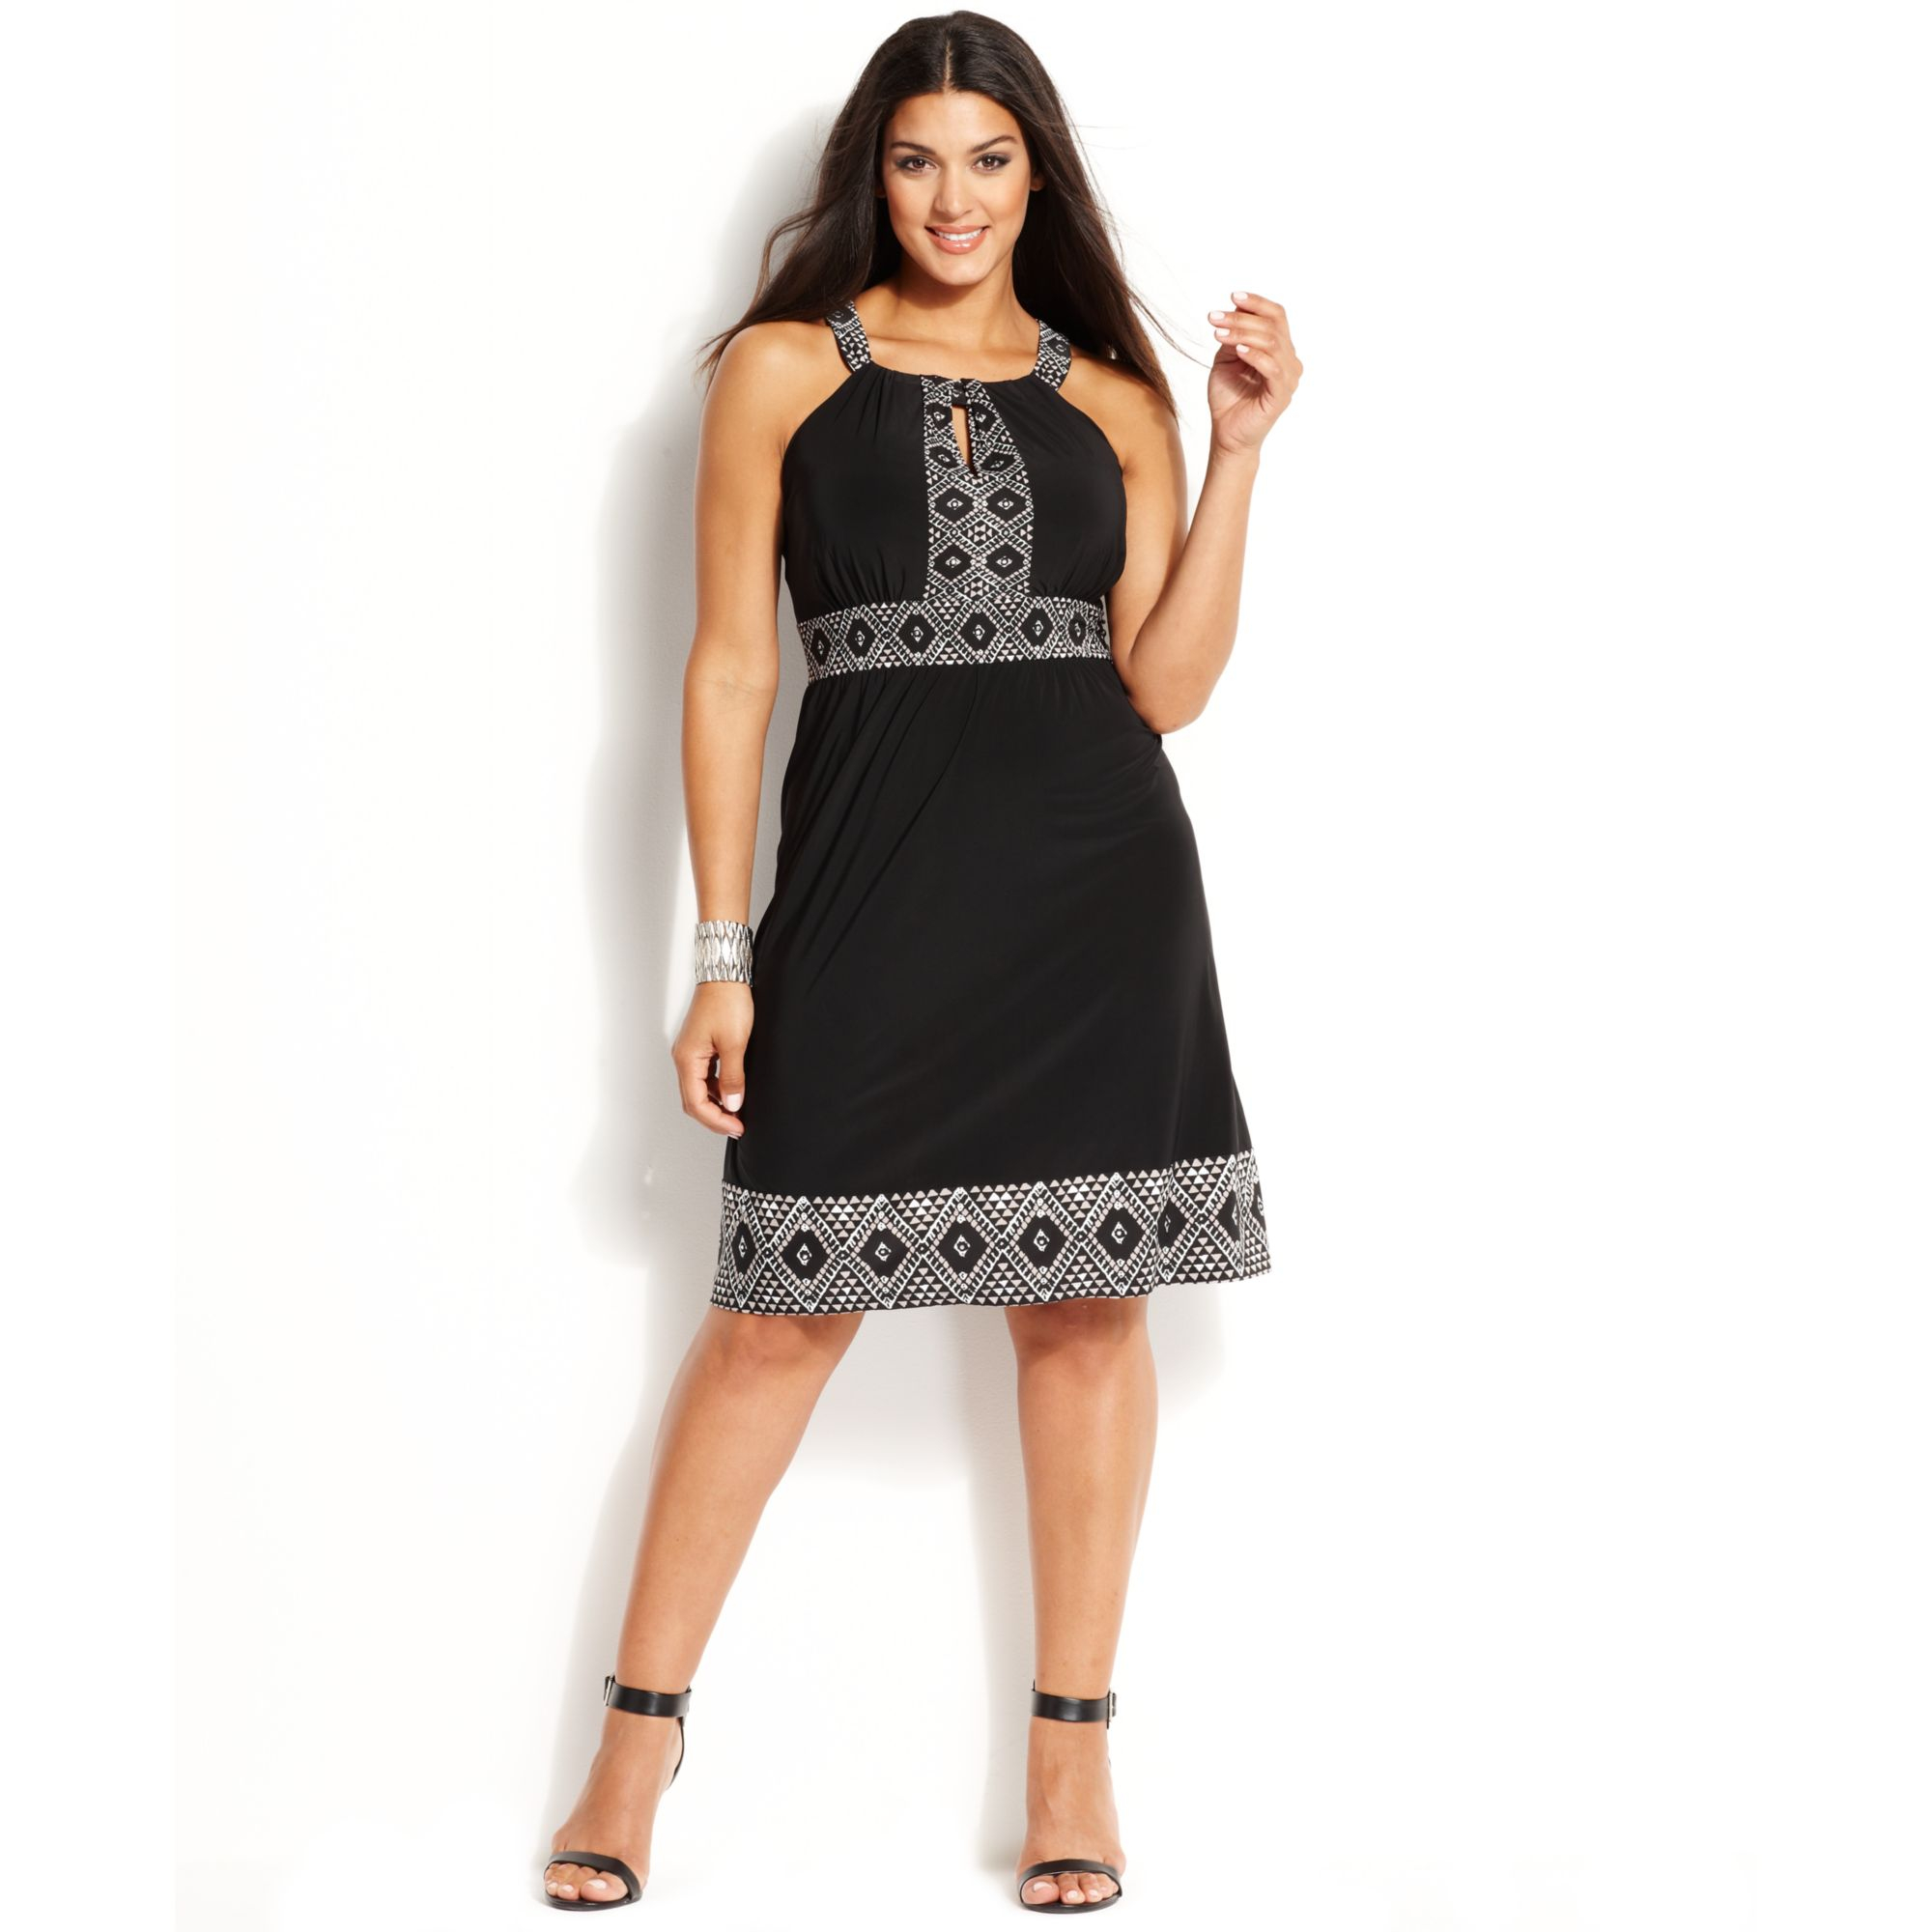 Plus Size Black Halter Dress – Fashion dresses